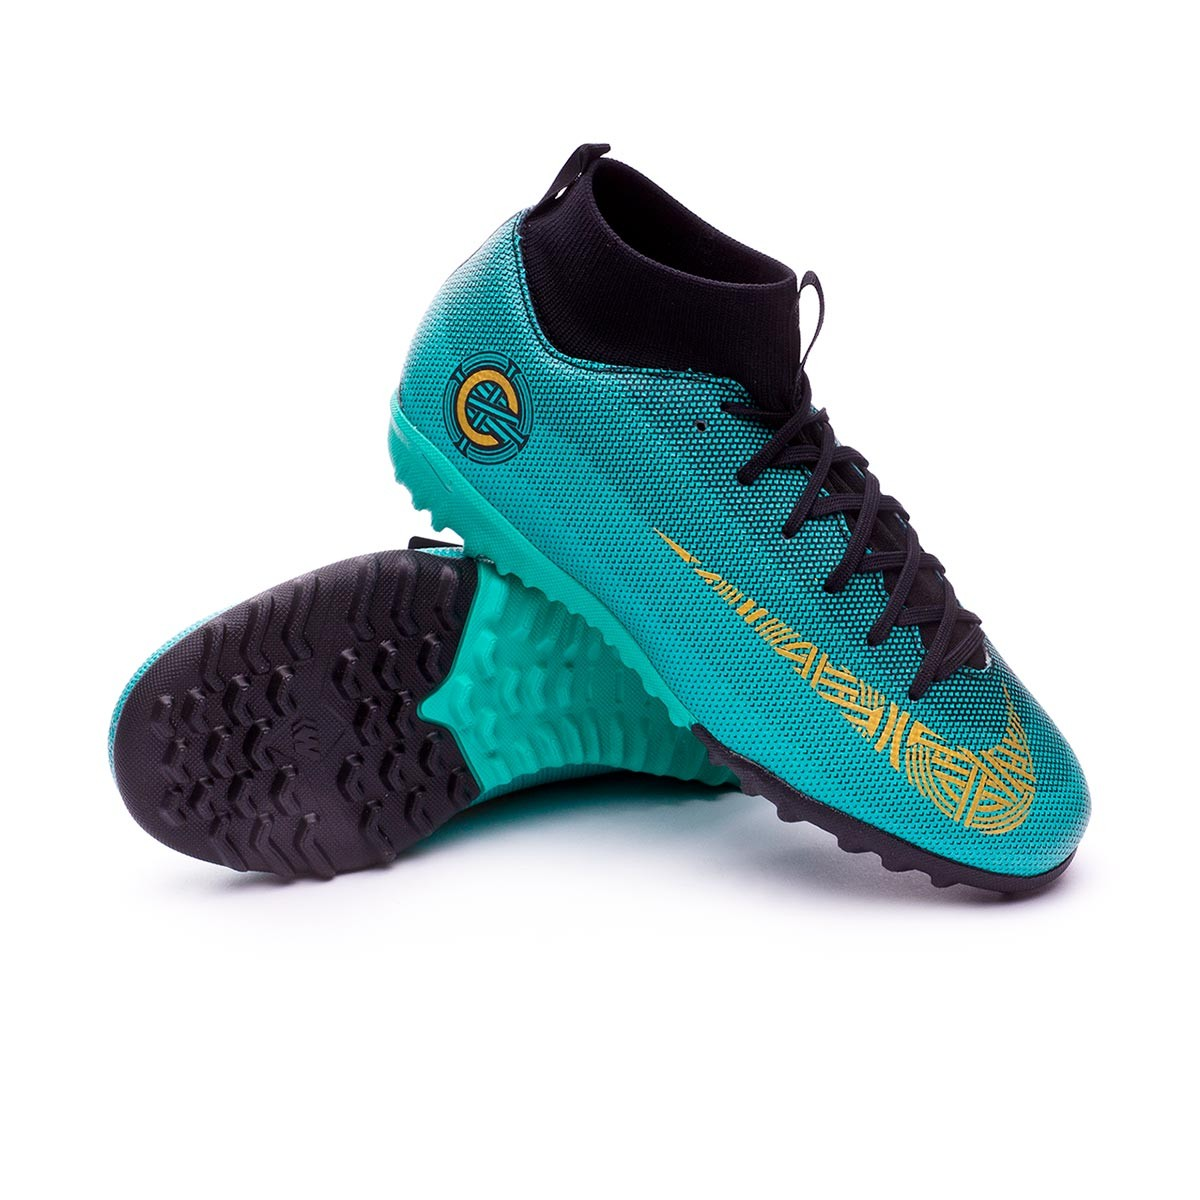 f57448df42bfd Tenis Nike Mercurial Superfly VI Academy GS CR7 Turf Niño Clear  jade-Metallic vivid gold-Black - Tienda de fútbol Fútbol Emotion